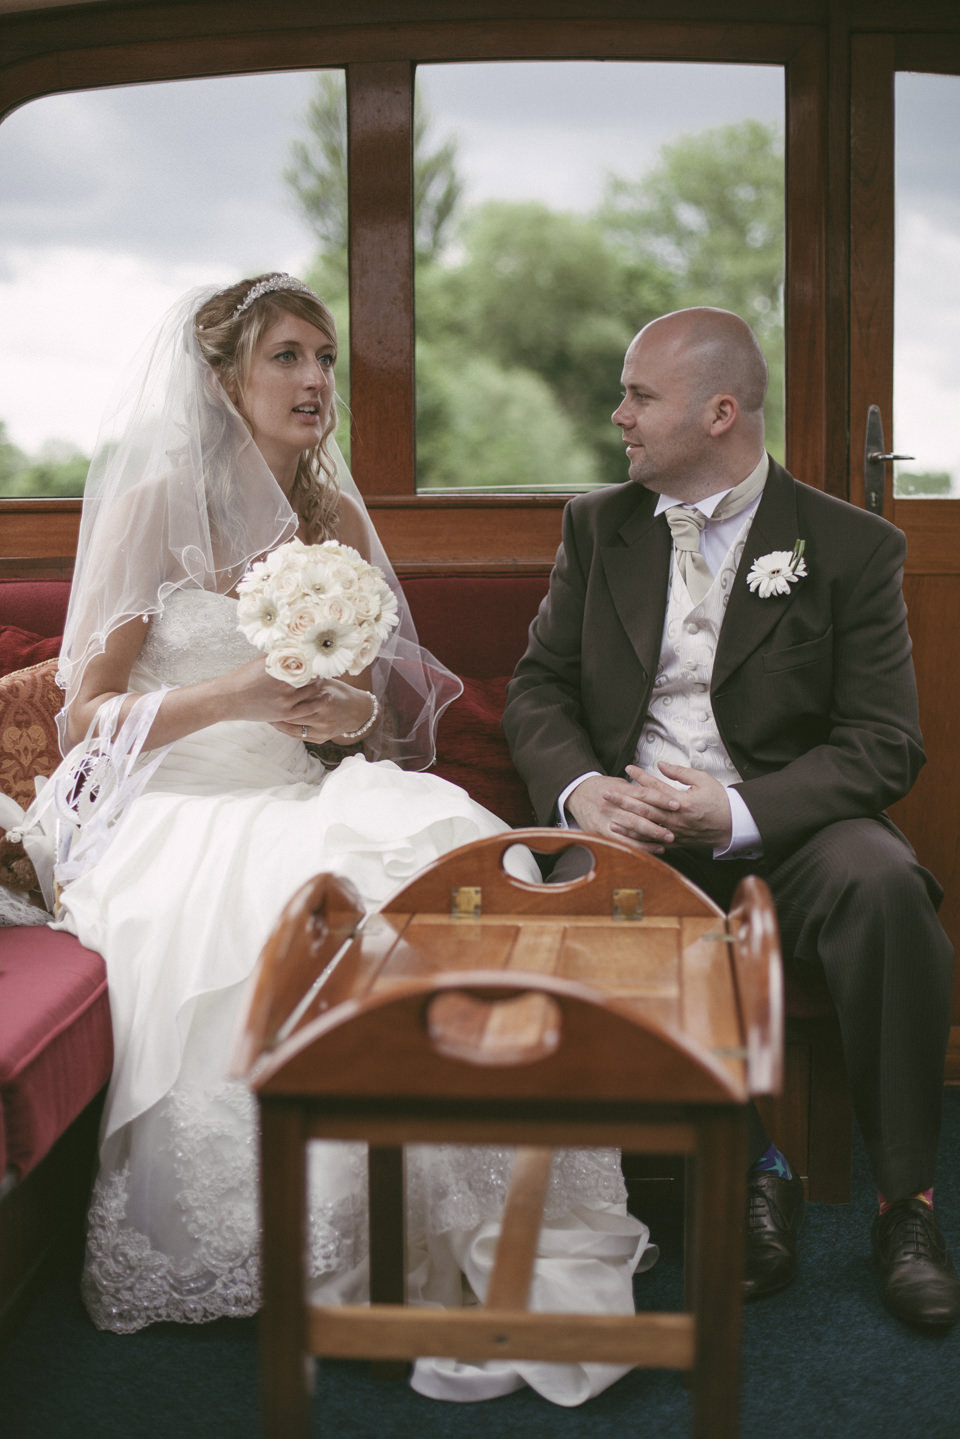 Nicola scott uk wedding photographs (60)